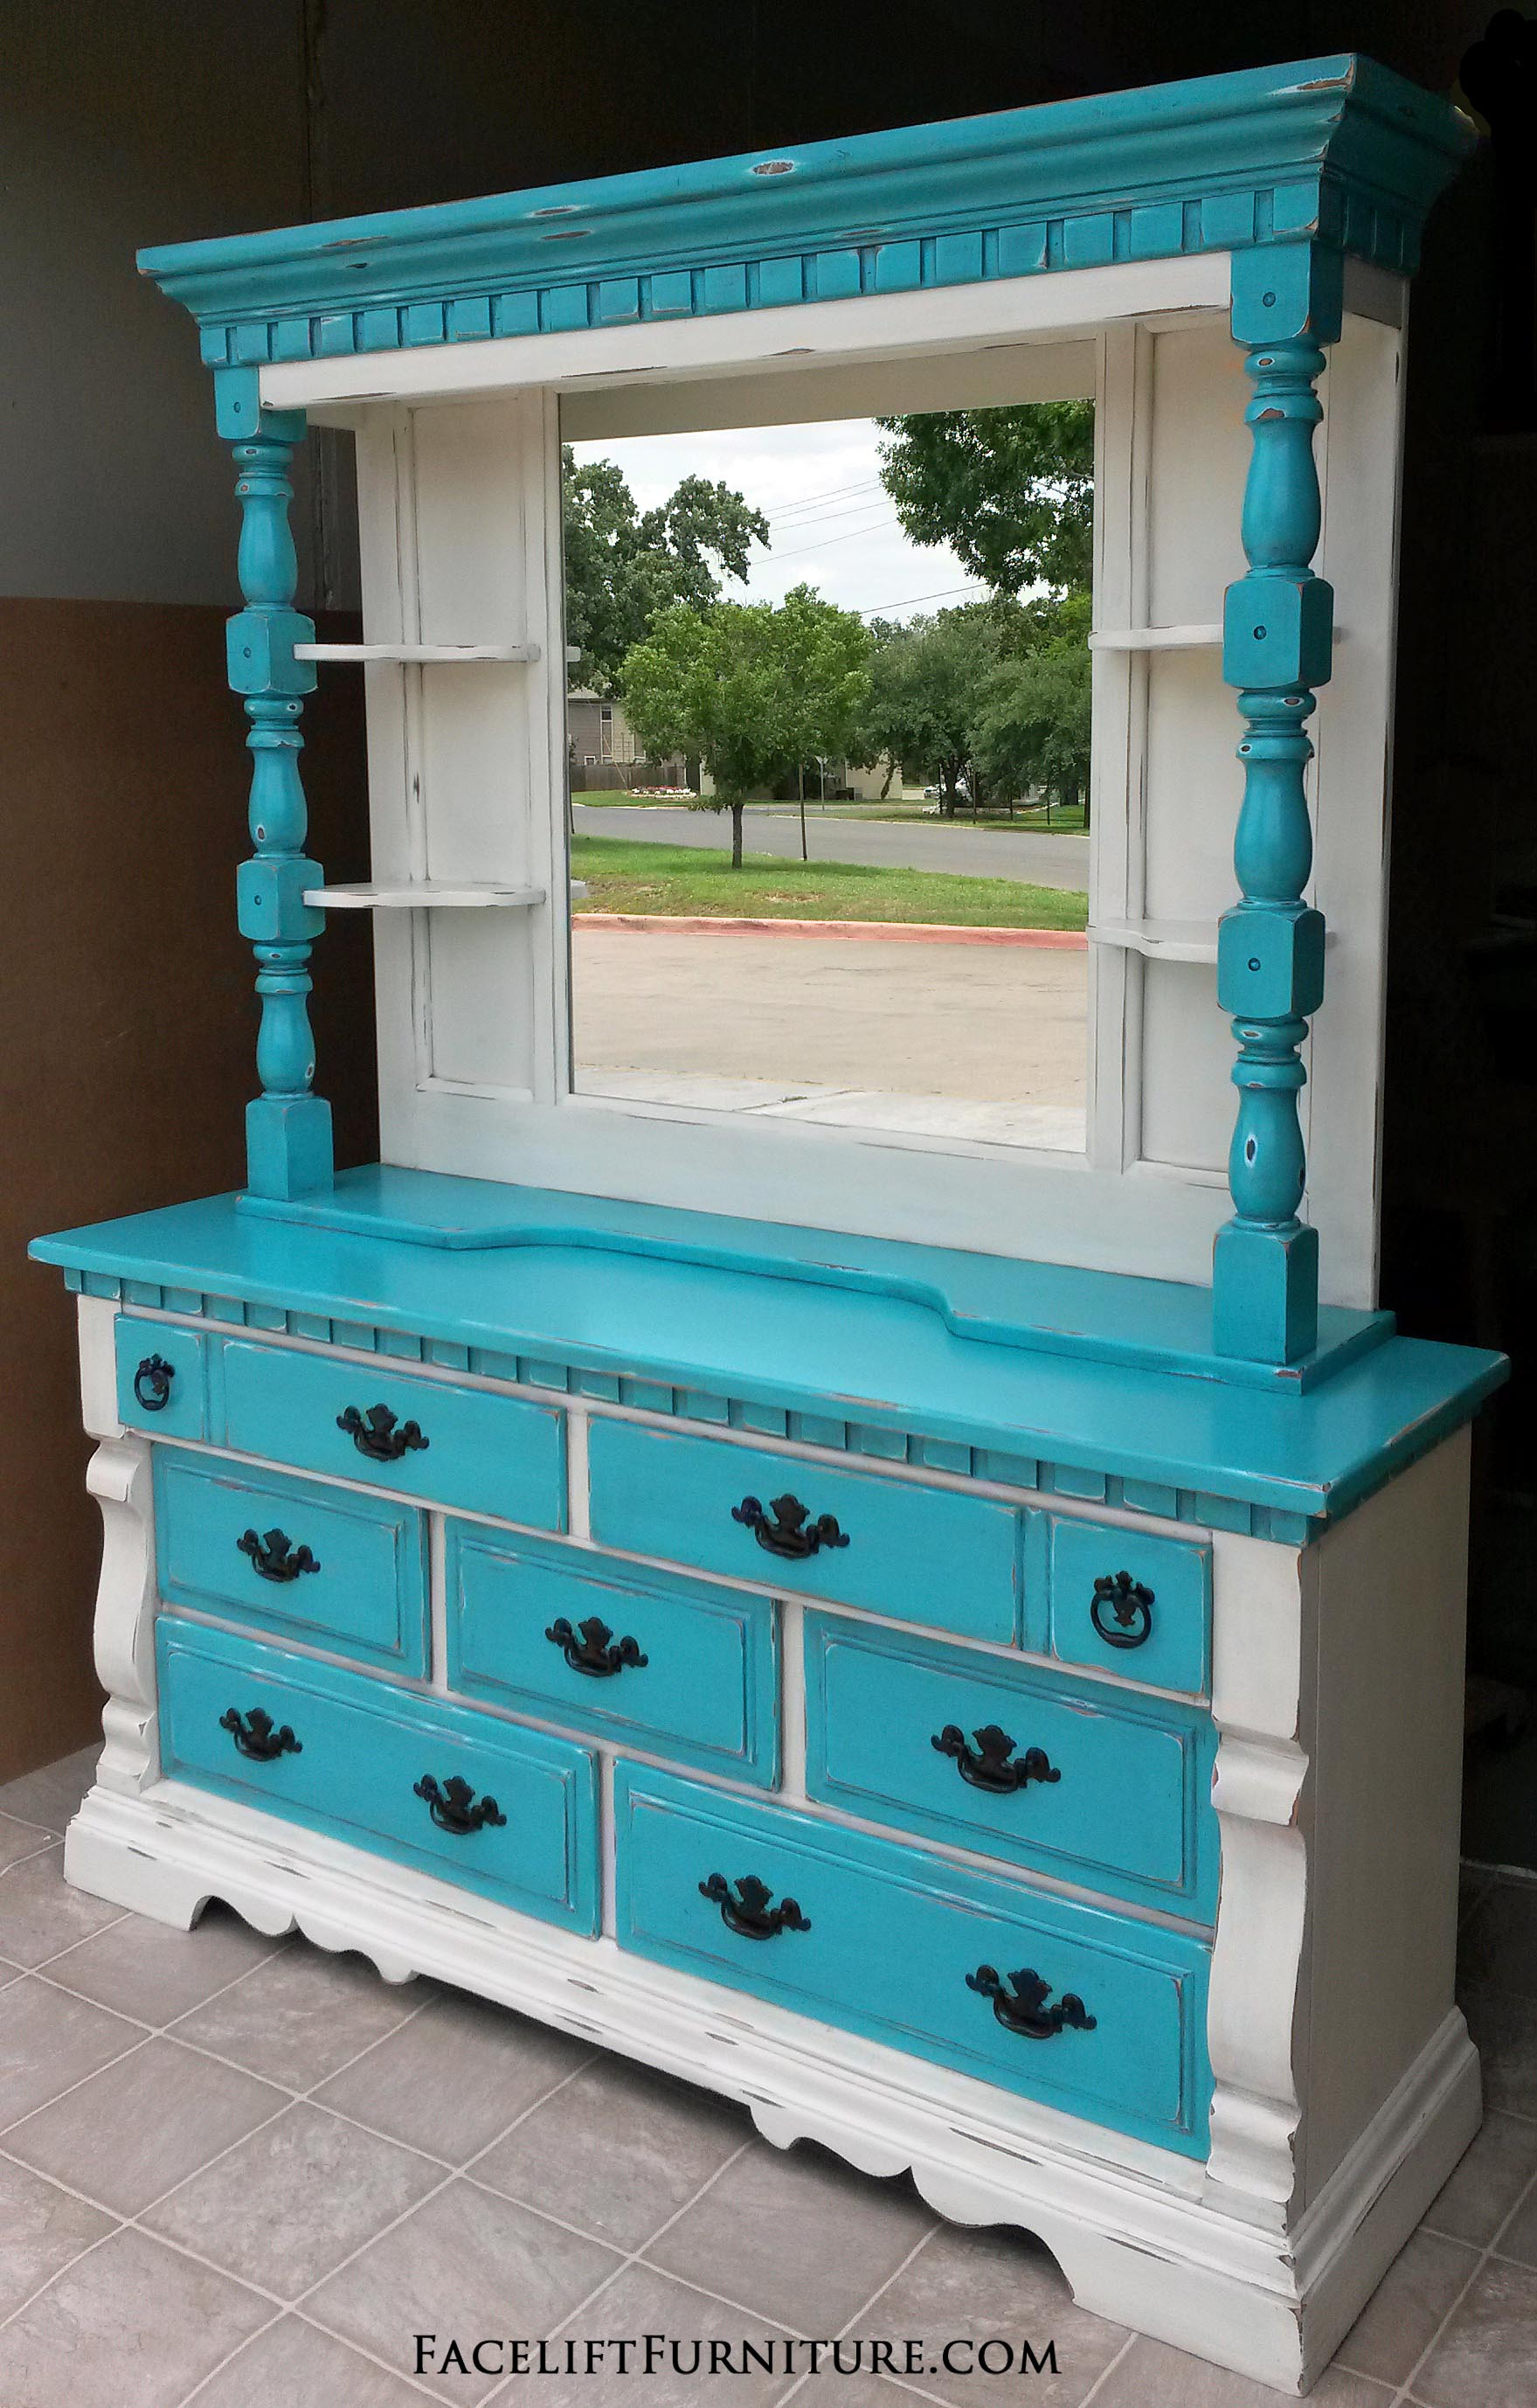 turquoise at placeholder west o furniture washed up key finest upcycling its